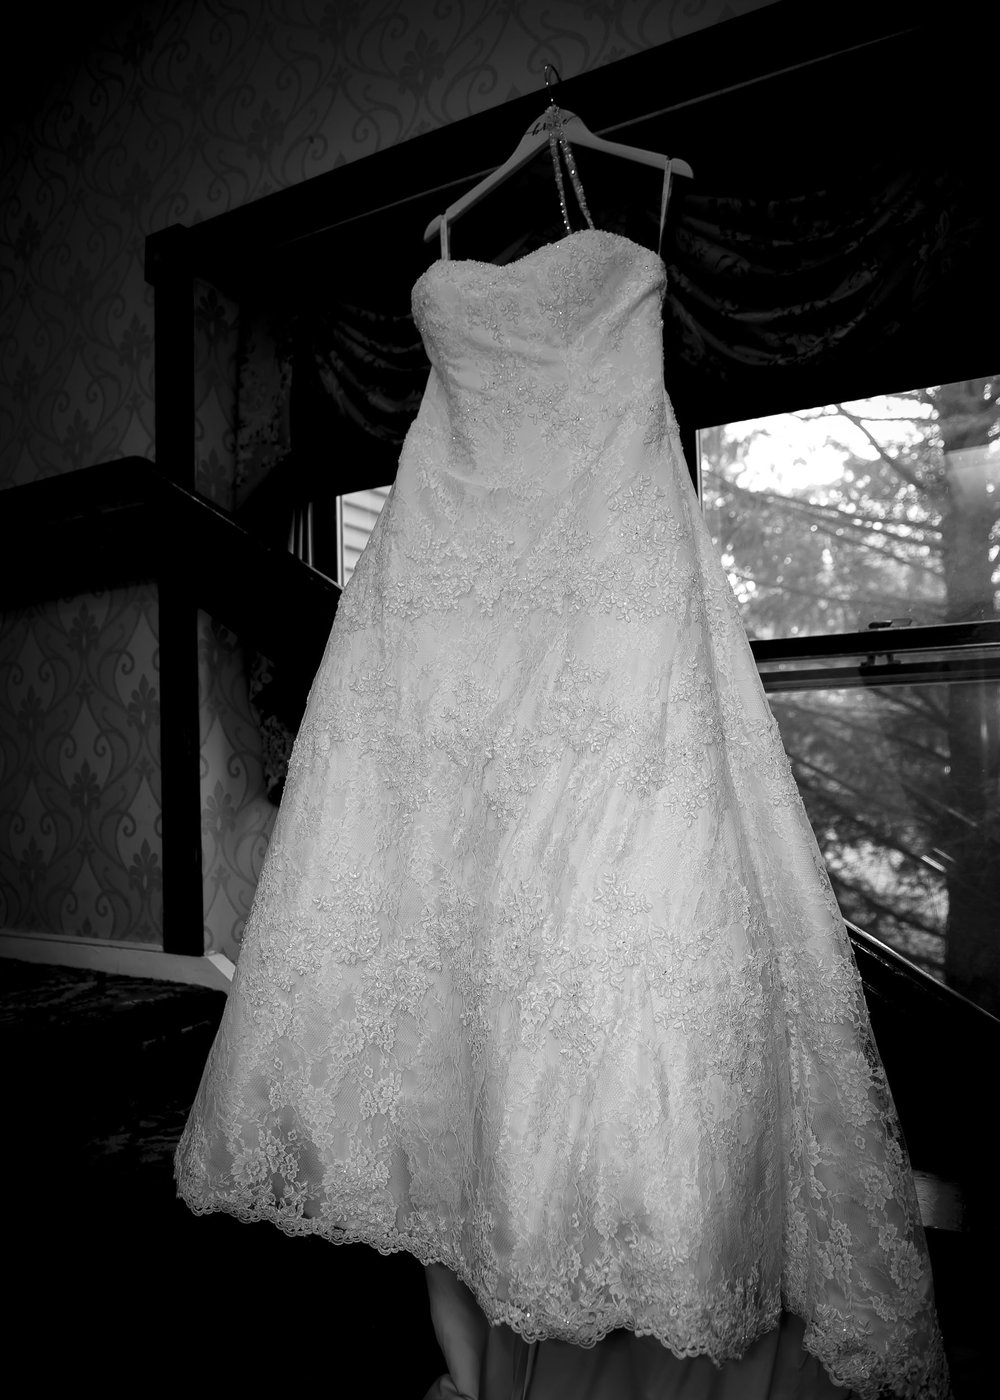 I love how this black and white image highlights the exquisite details of this beautiful wedding dress!